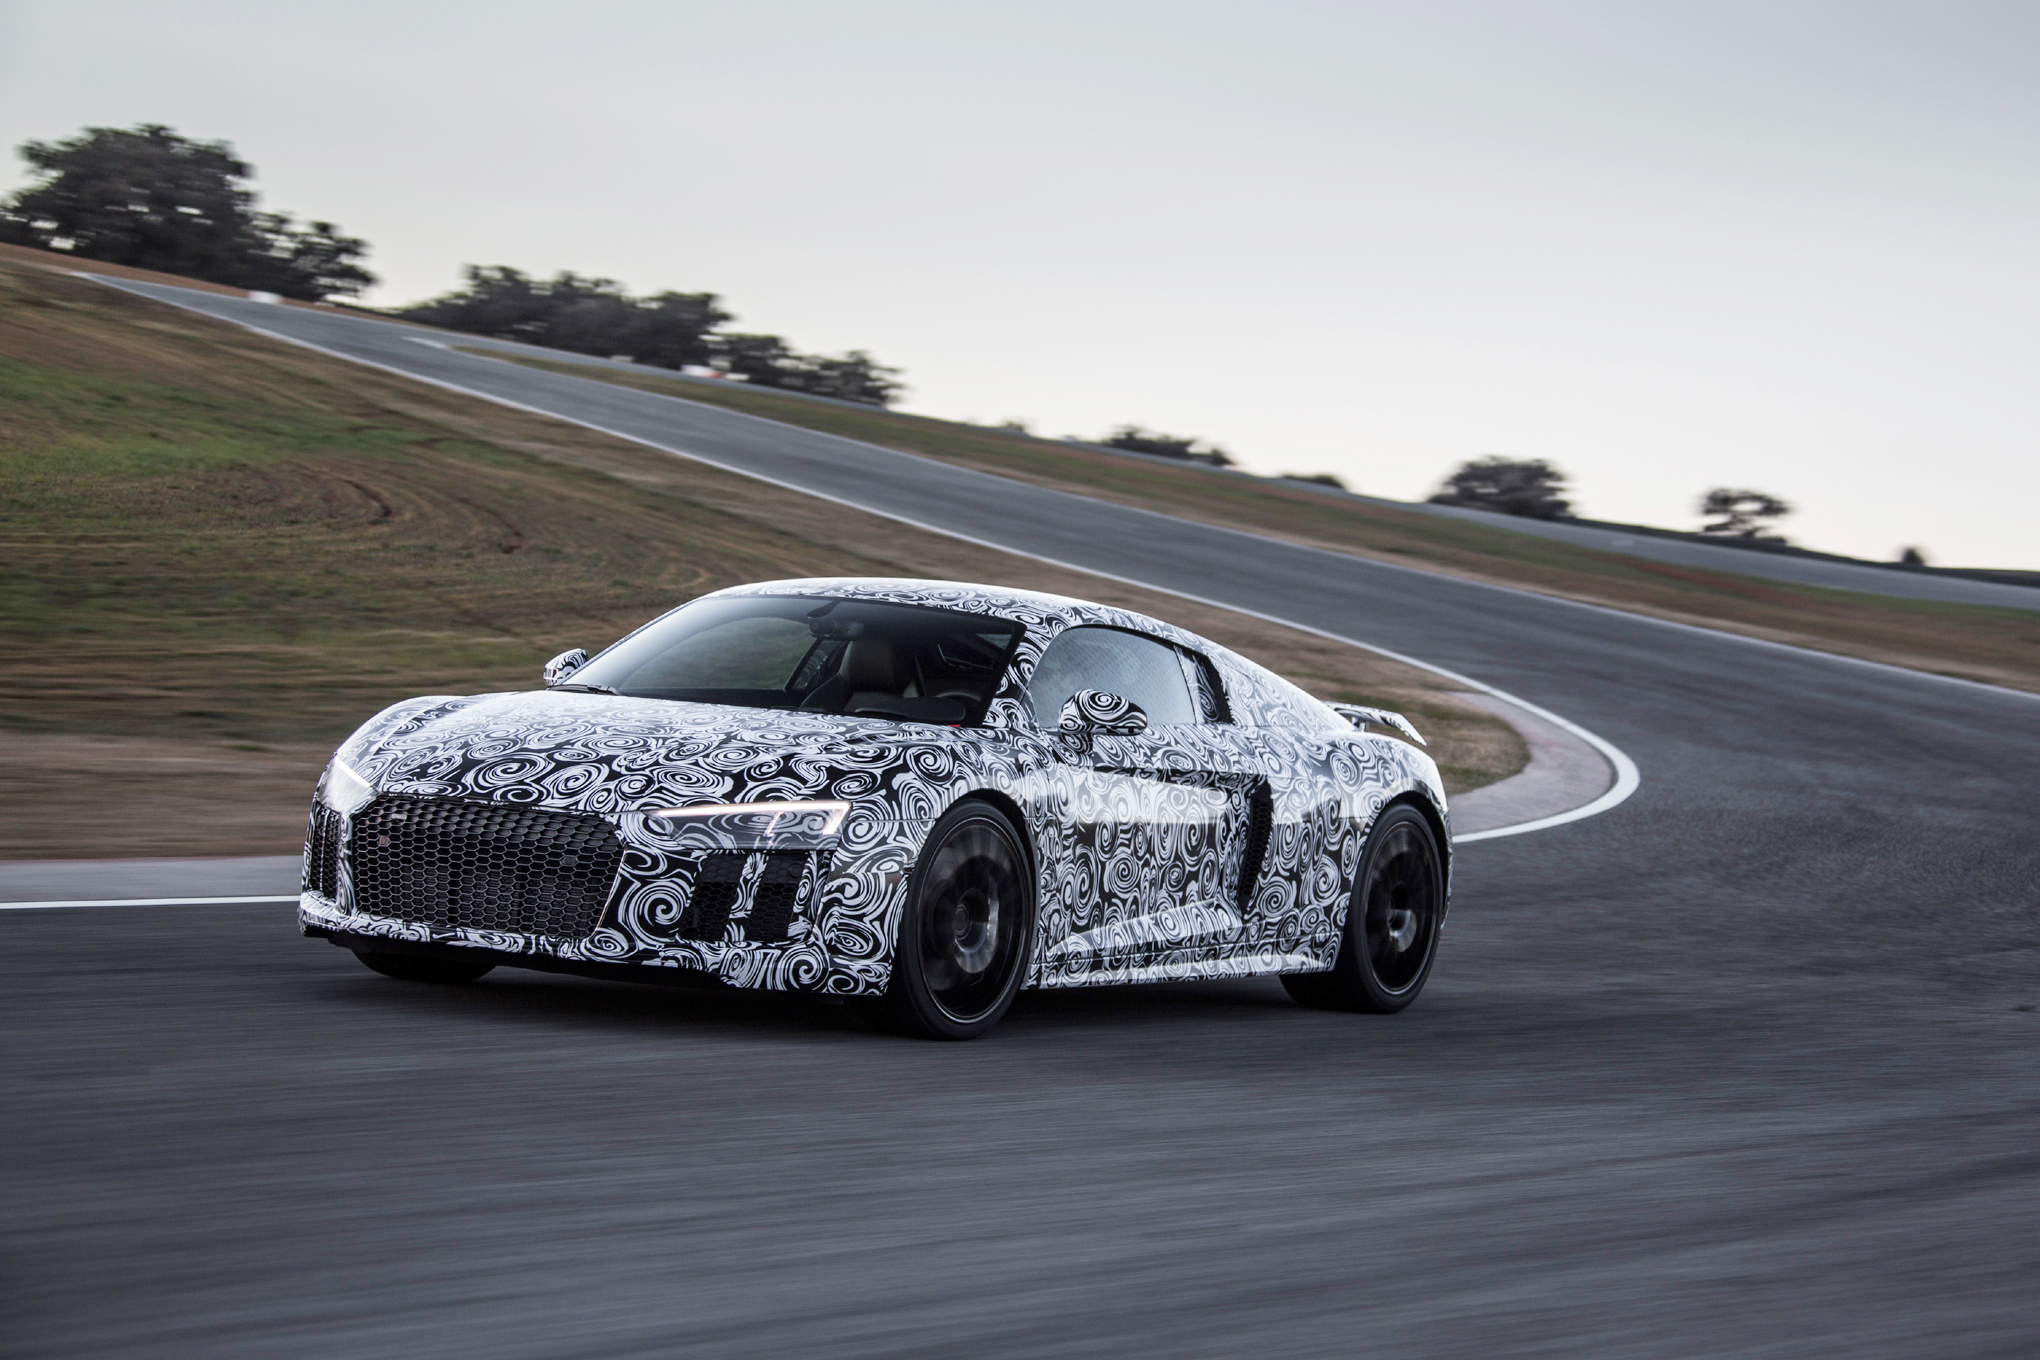 Garage Audi Tours Second Gen Audi R8 V10 Plus Prototype First Ride Motortrend